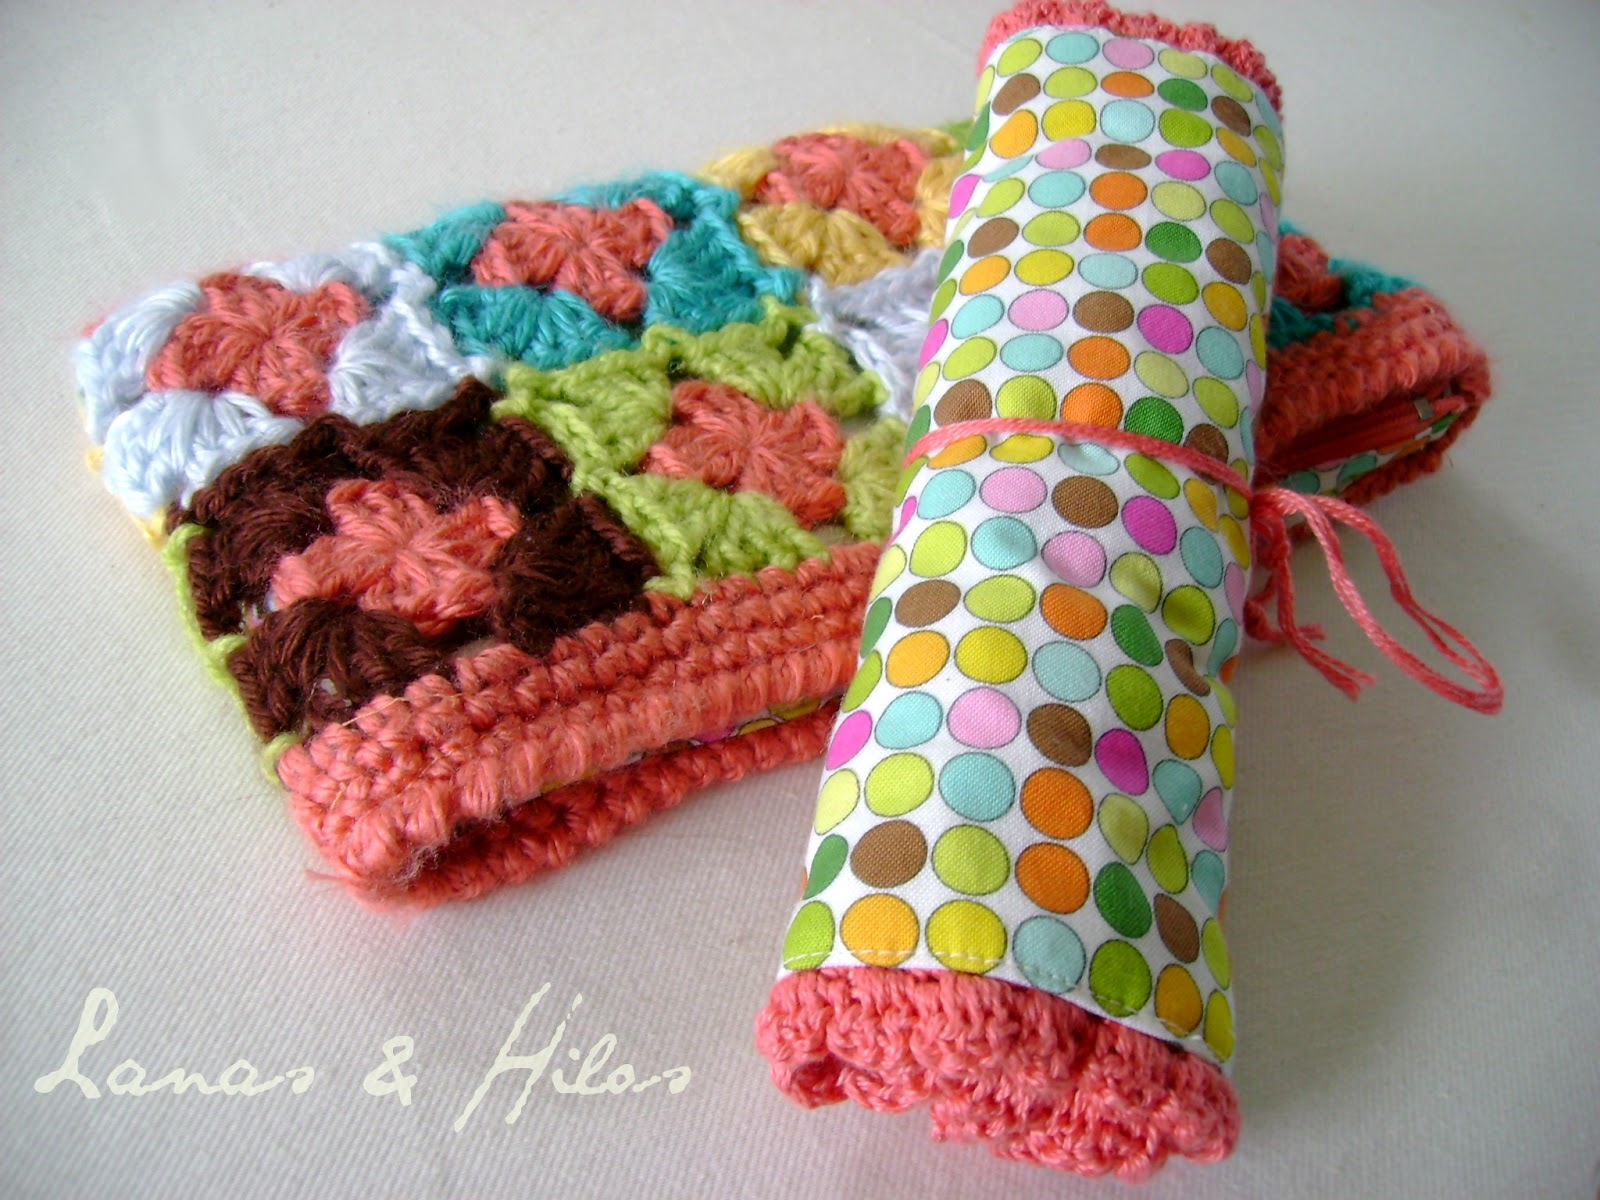 Crochet Gifts : mom hada special surprise for our little knitting group: two crochet ...